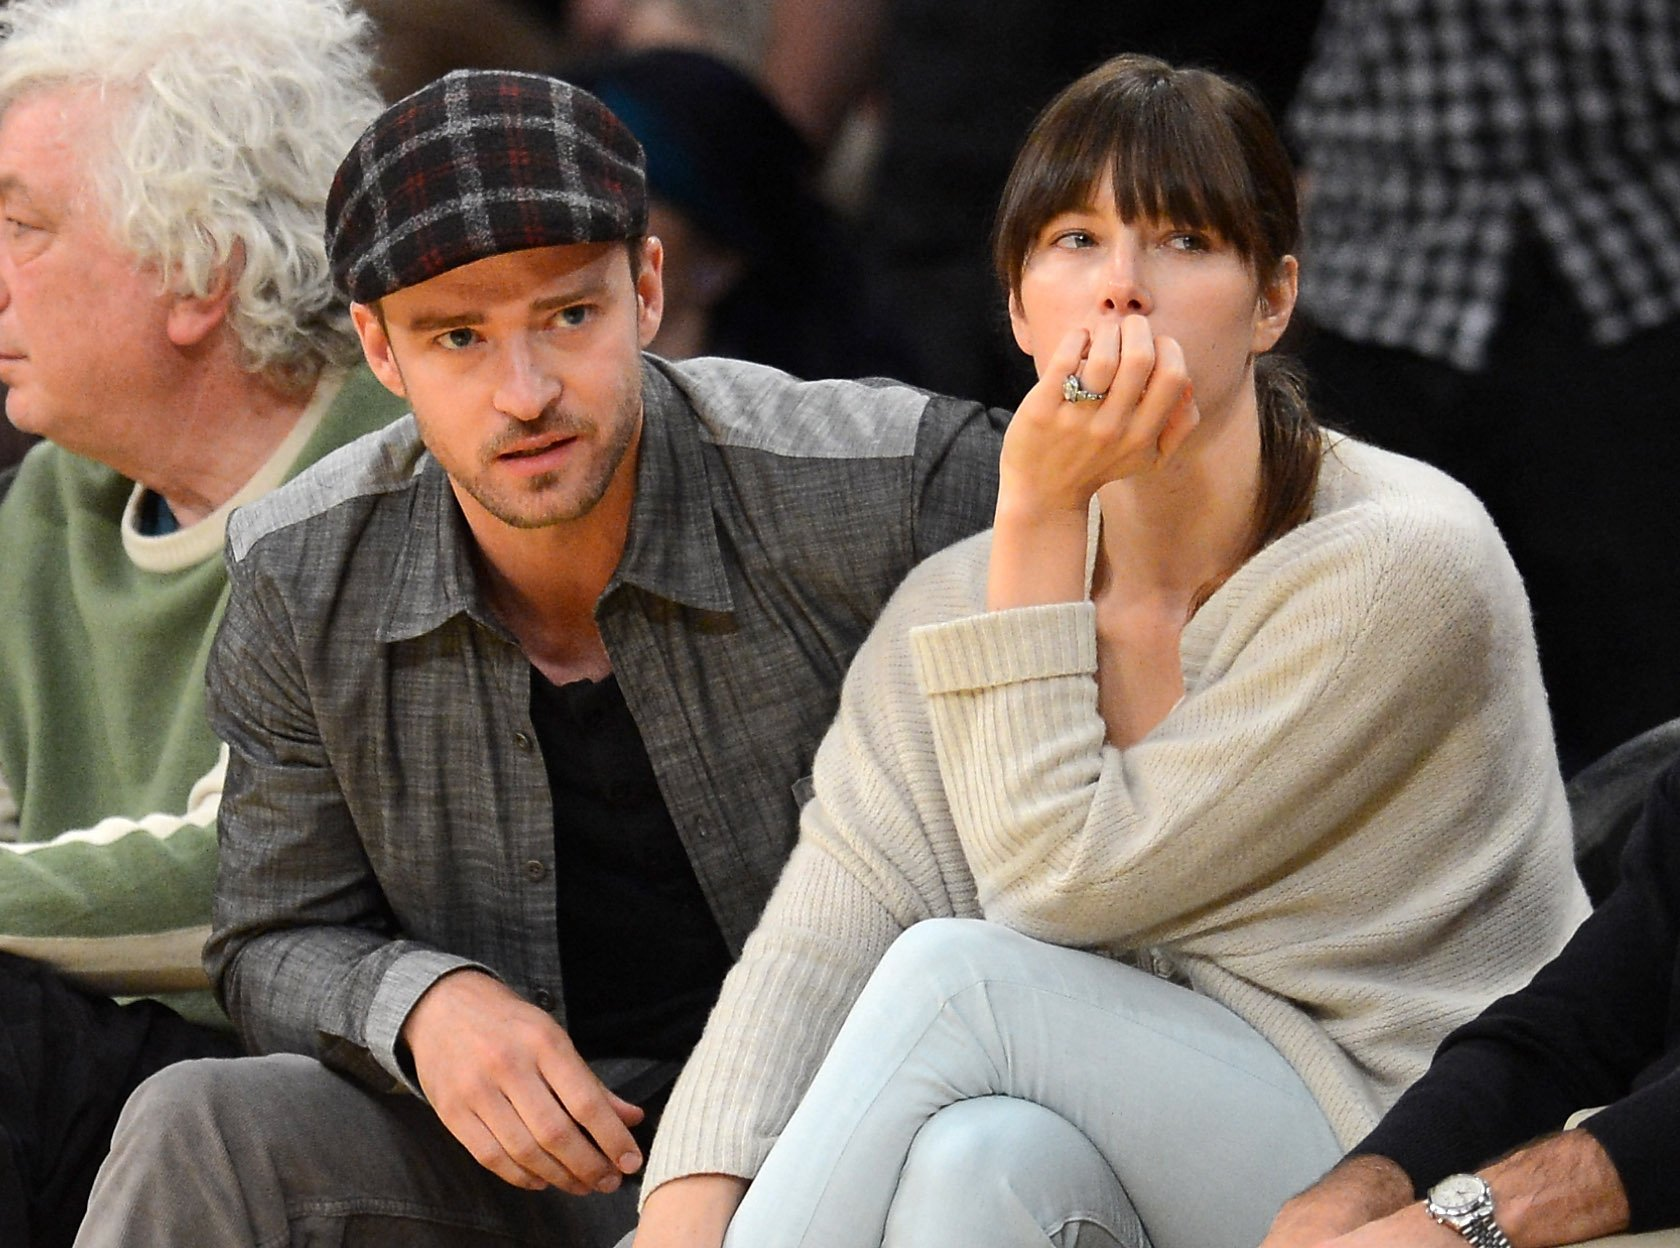 Justin Timberlake and Jessica Biel at Staples Center in Los Angeles / Getty Images